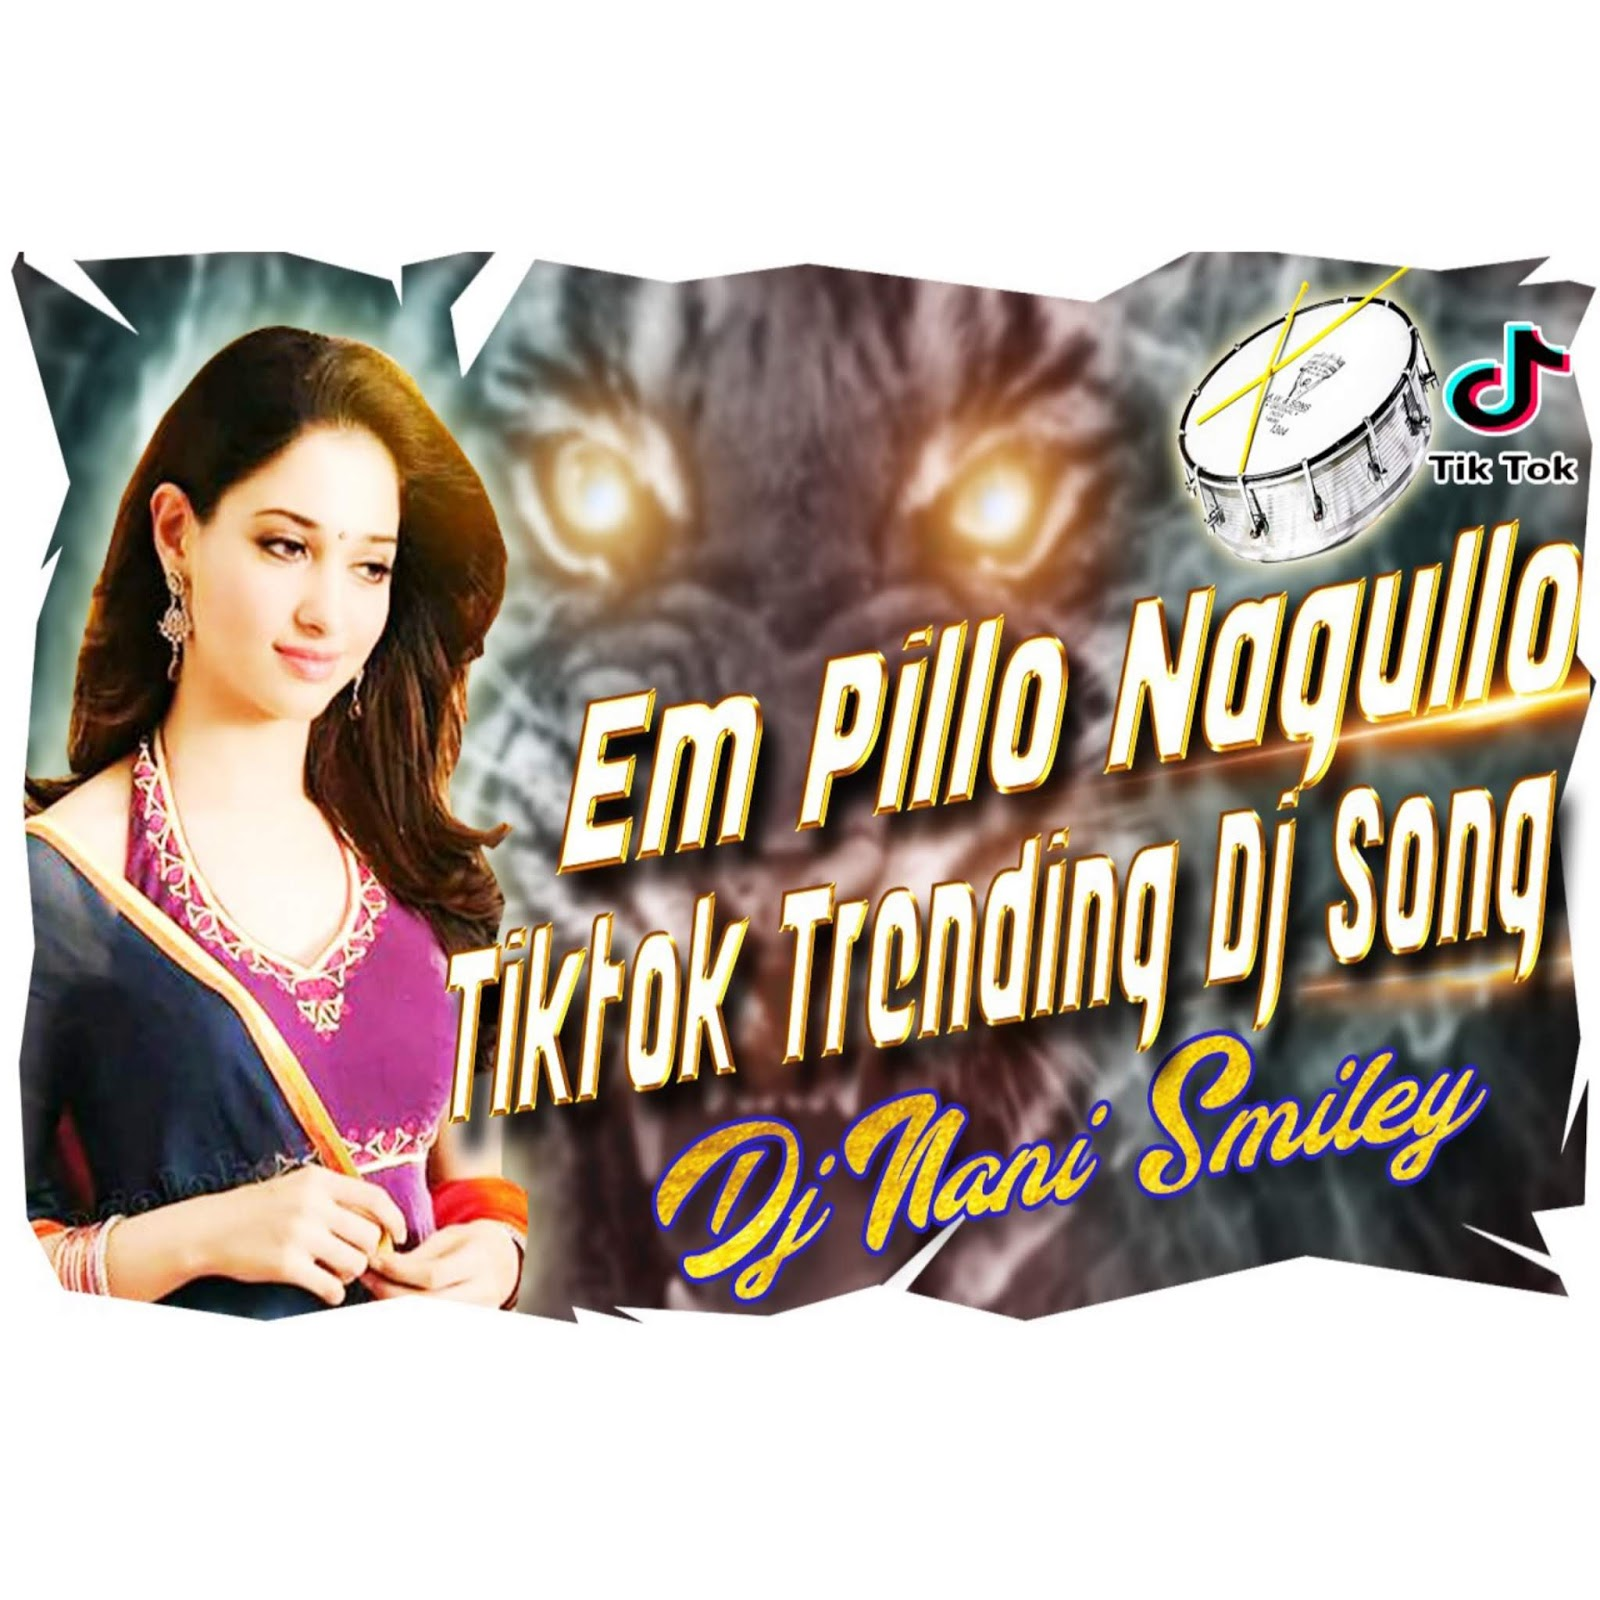 em pillo nagulo song remix,em pillo nagulo song DjSong 2019,em pillo nagulo song song download,em pillo nagulo song special remix,em pillo nagulo song theenmar mix,em pillo nagulo song naa songs download,em pillo nagulo song latest mix,em pillo nagulo song 2019 folk song,Telugu folk songs 2019 remixes,em pillo nagulo song Telugu dj song,em pillo nagulo song Telugu folk song,em pillo nagulo song spl mix